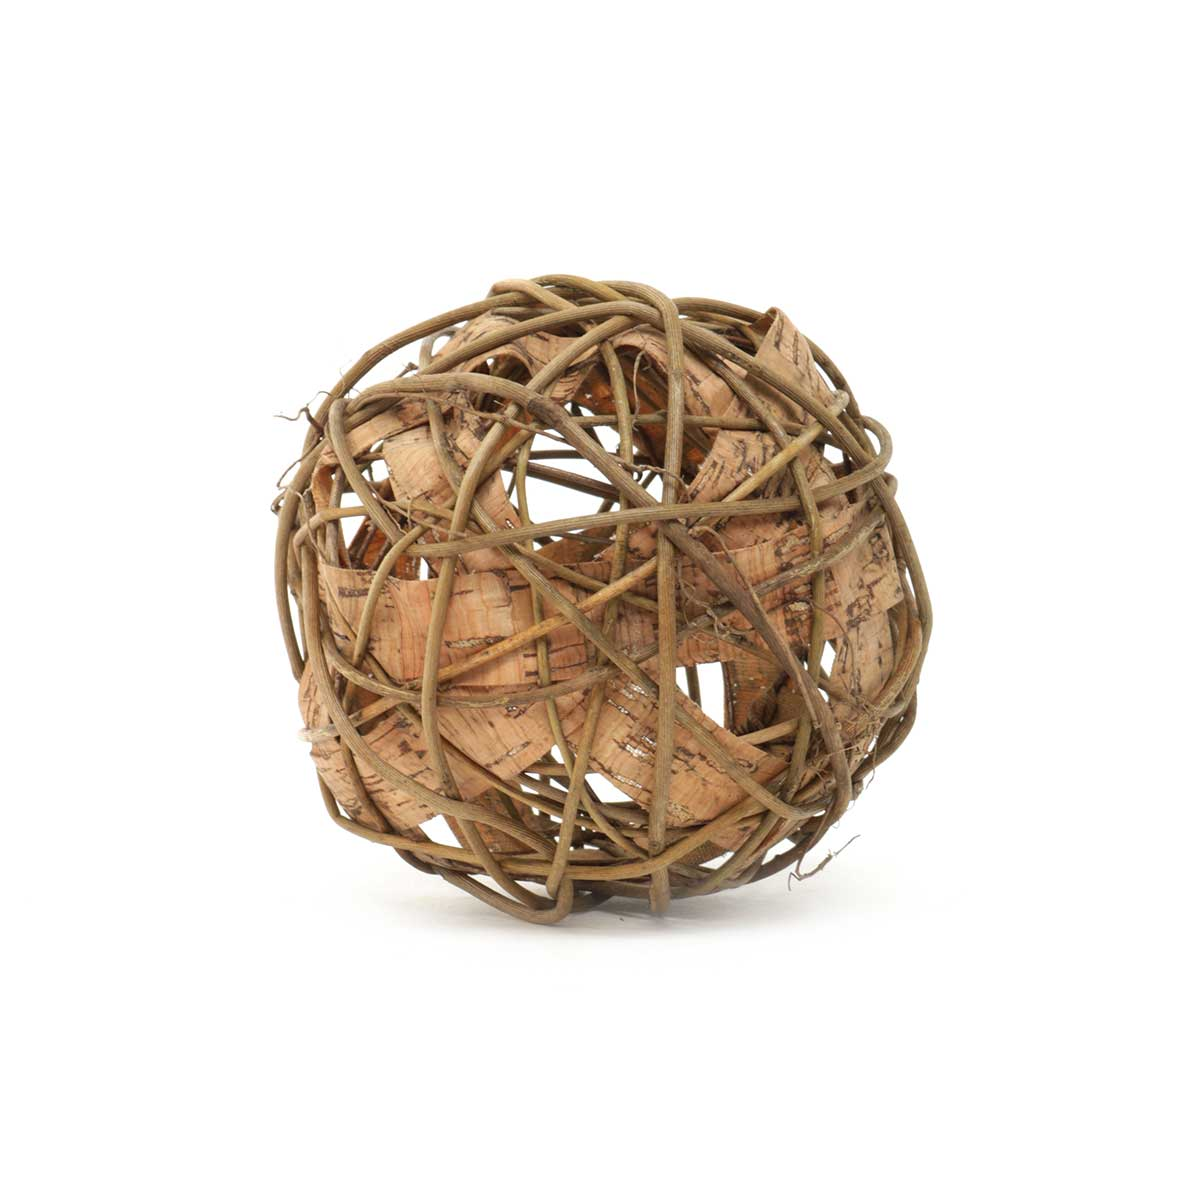 Bark & Twig Ball 5""